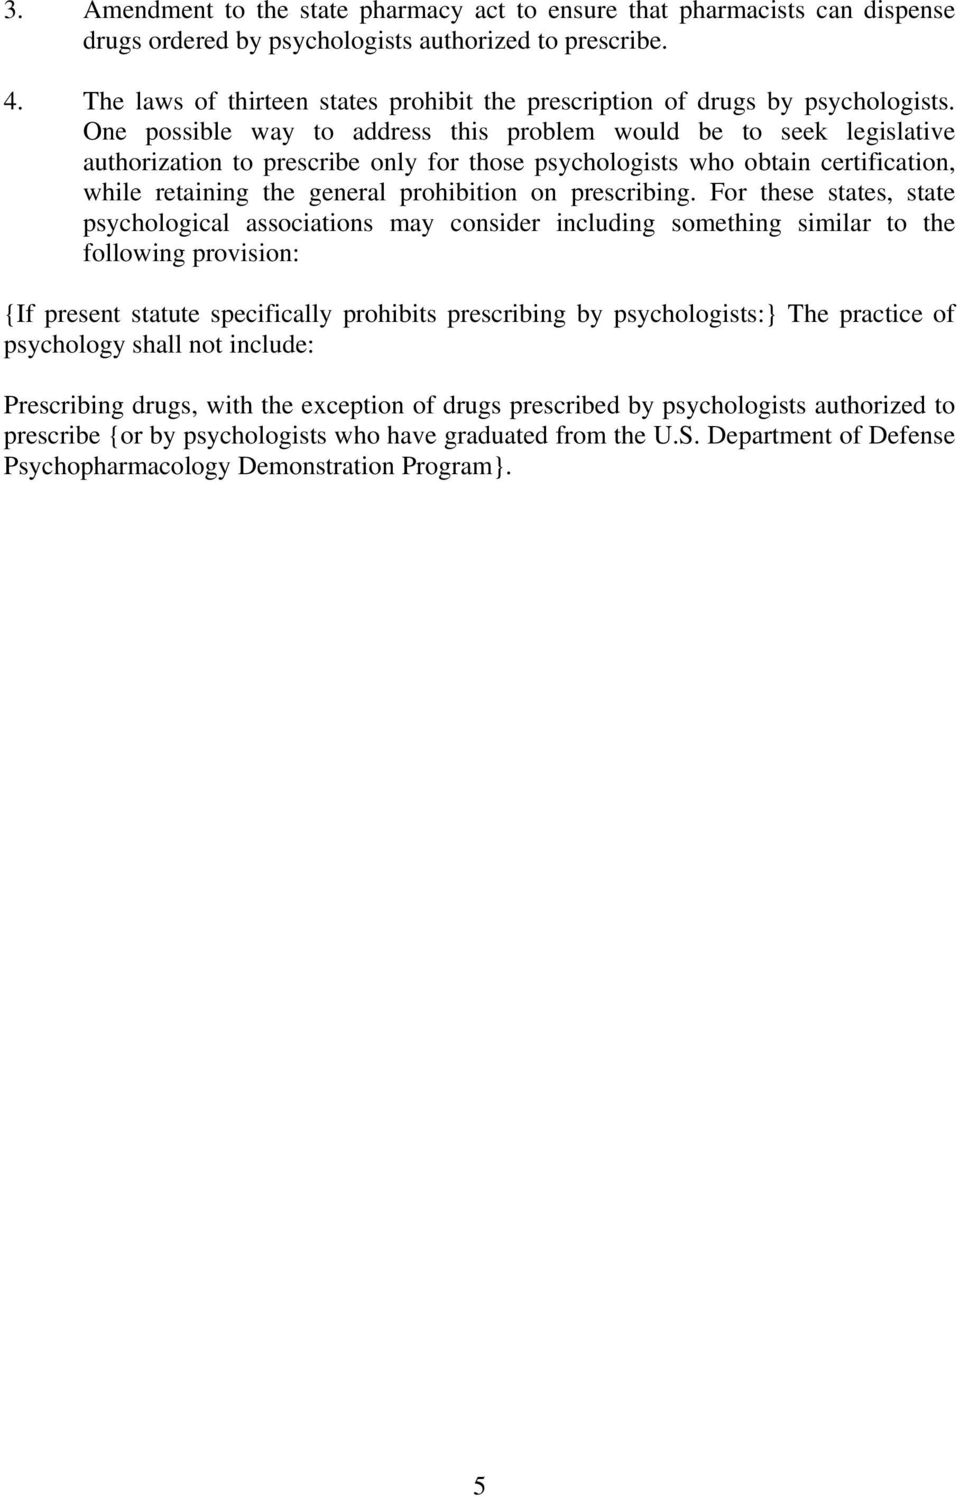 One possible way to address this problem would be to seek legislative authorization to prescribe only for those psychologists who obtain certification, while retaining the general prohibition on